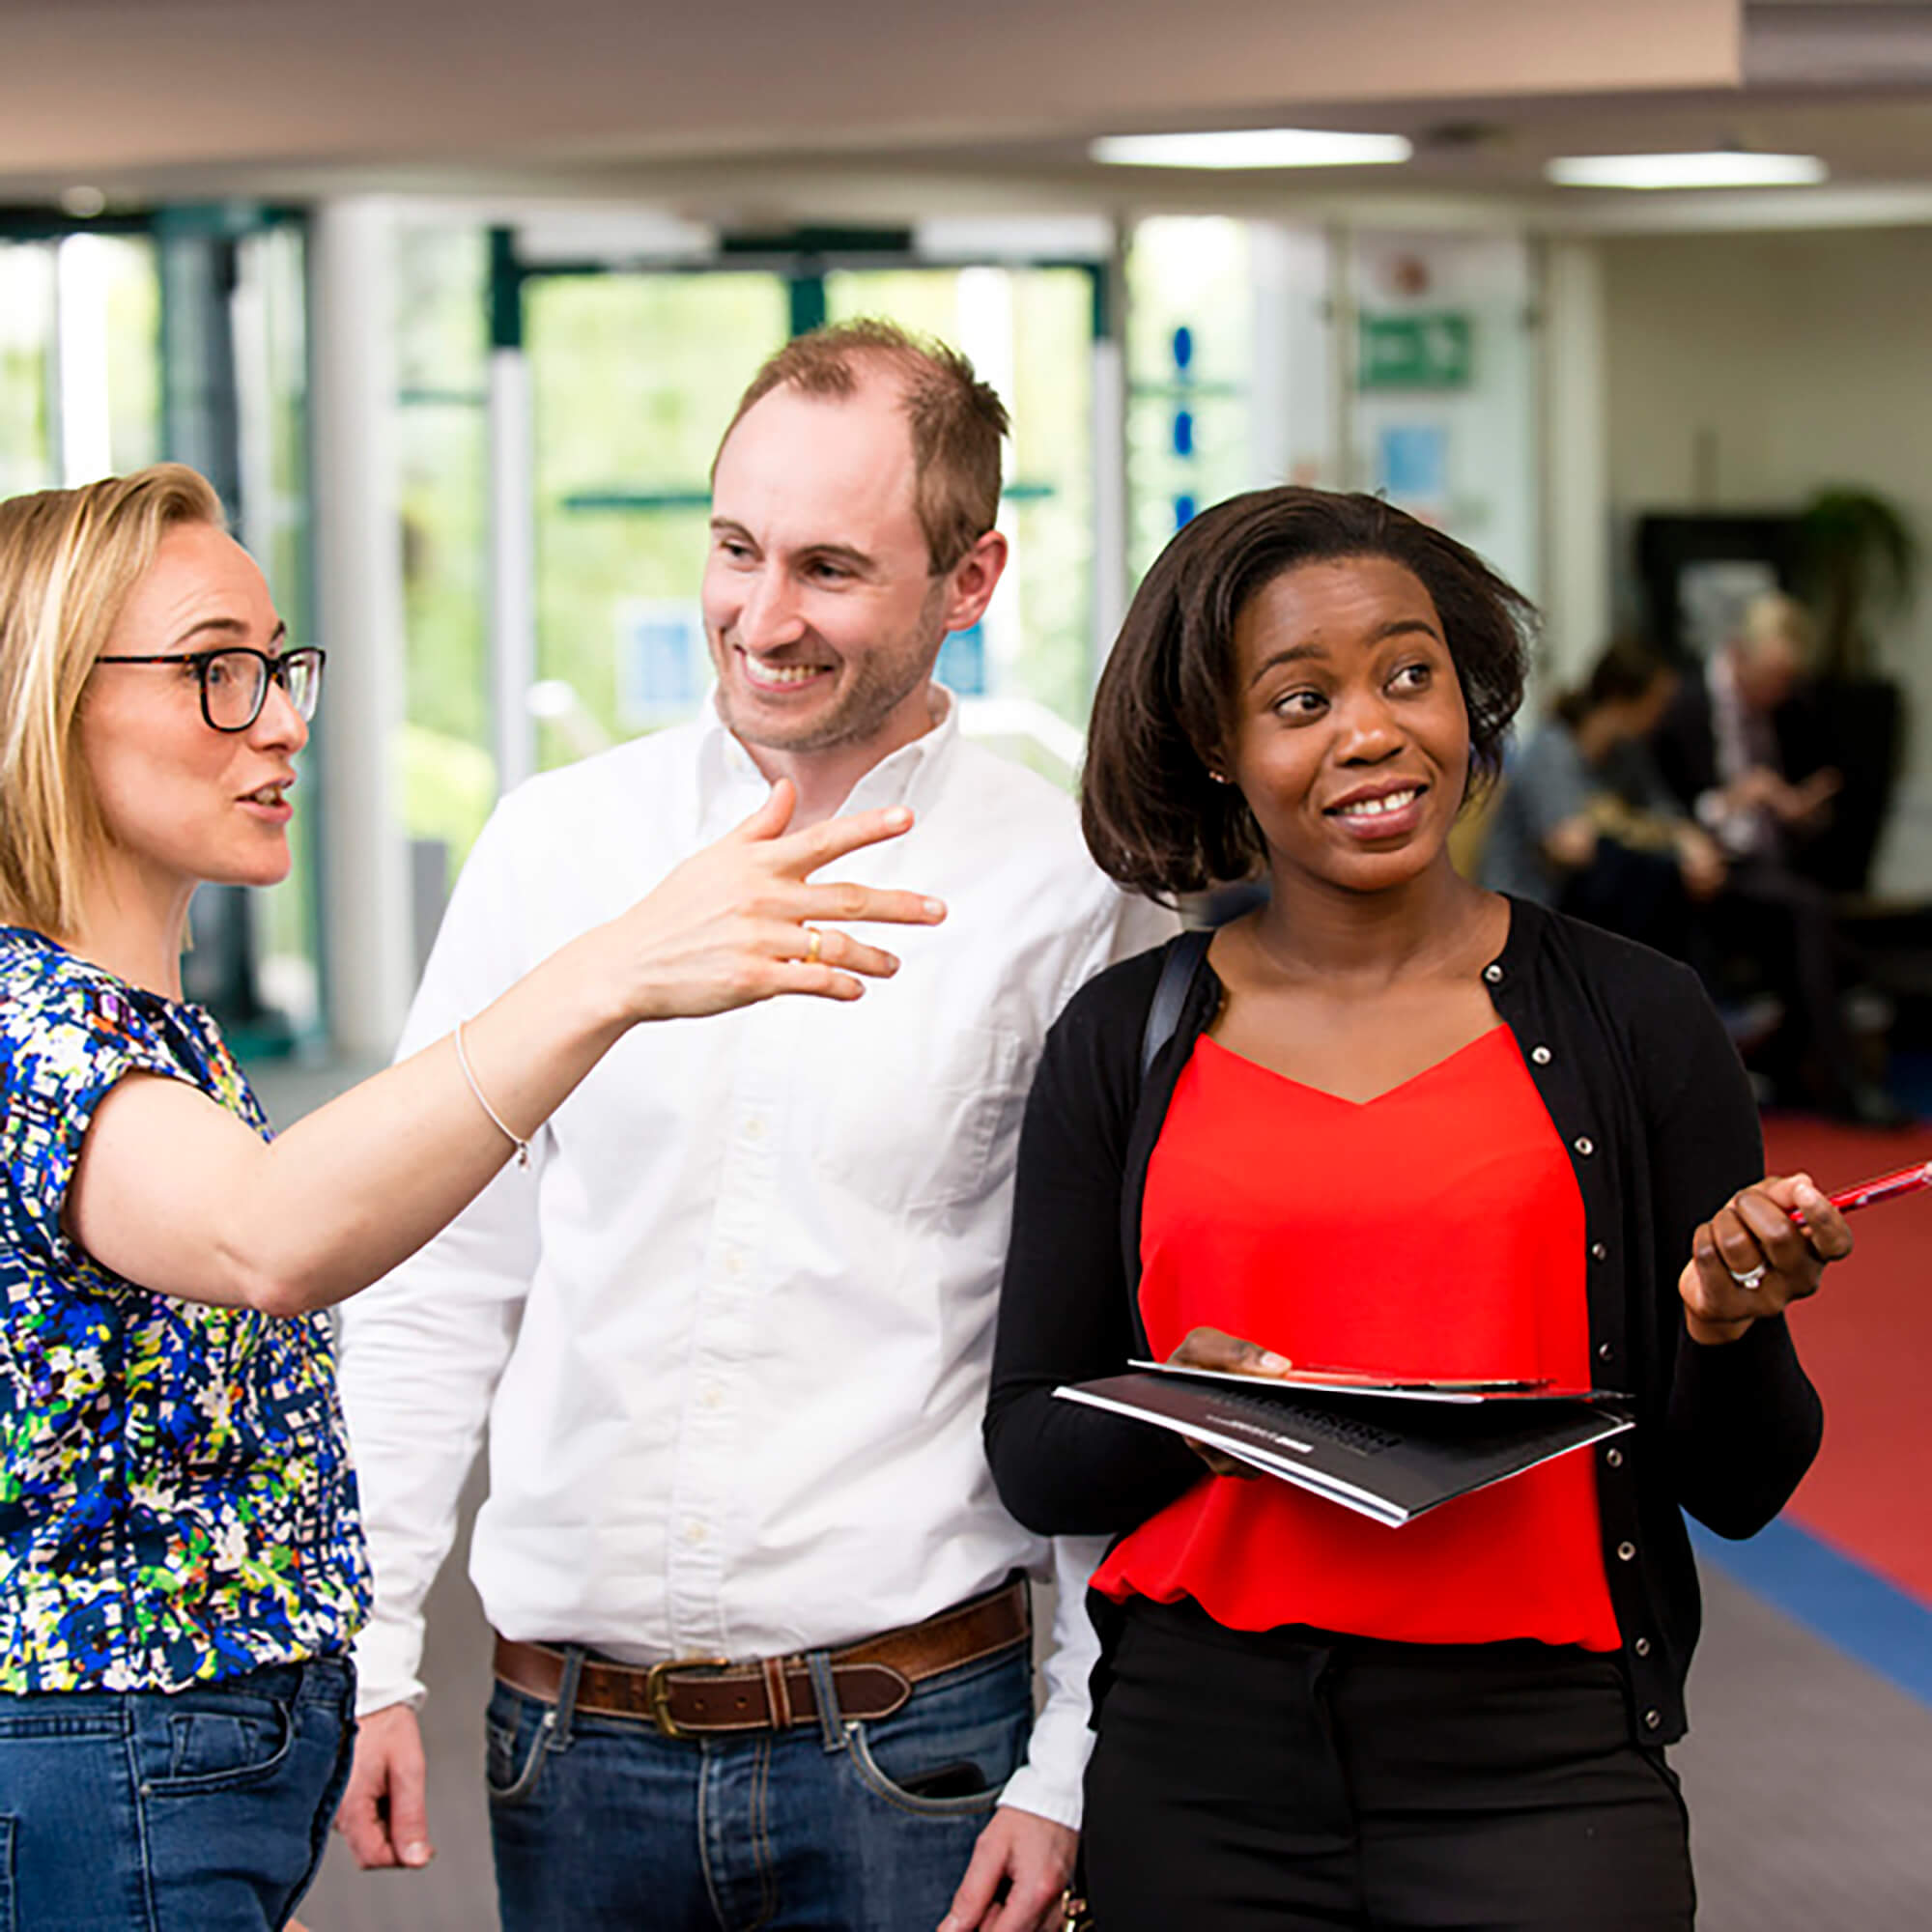 University employee talking to two guests at an Open Day whilst pointing to the direction they need to go